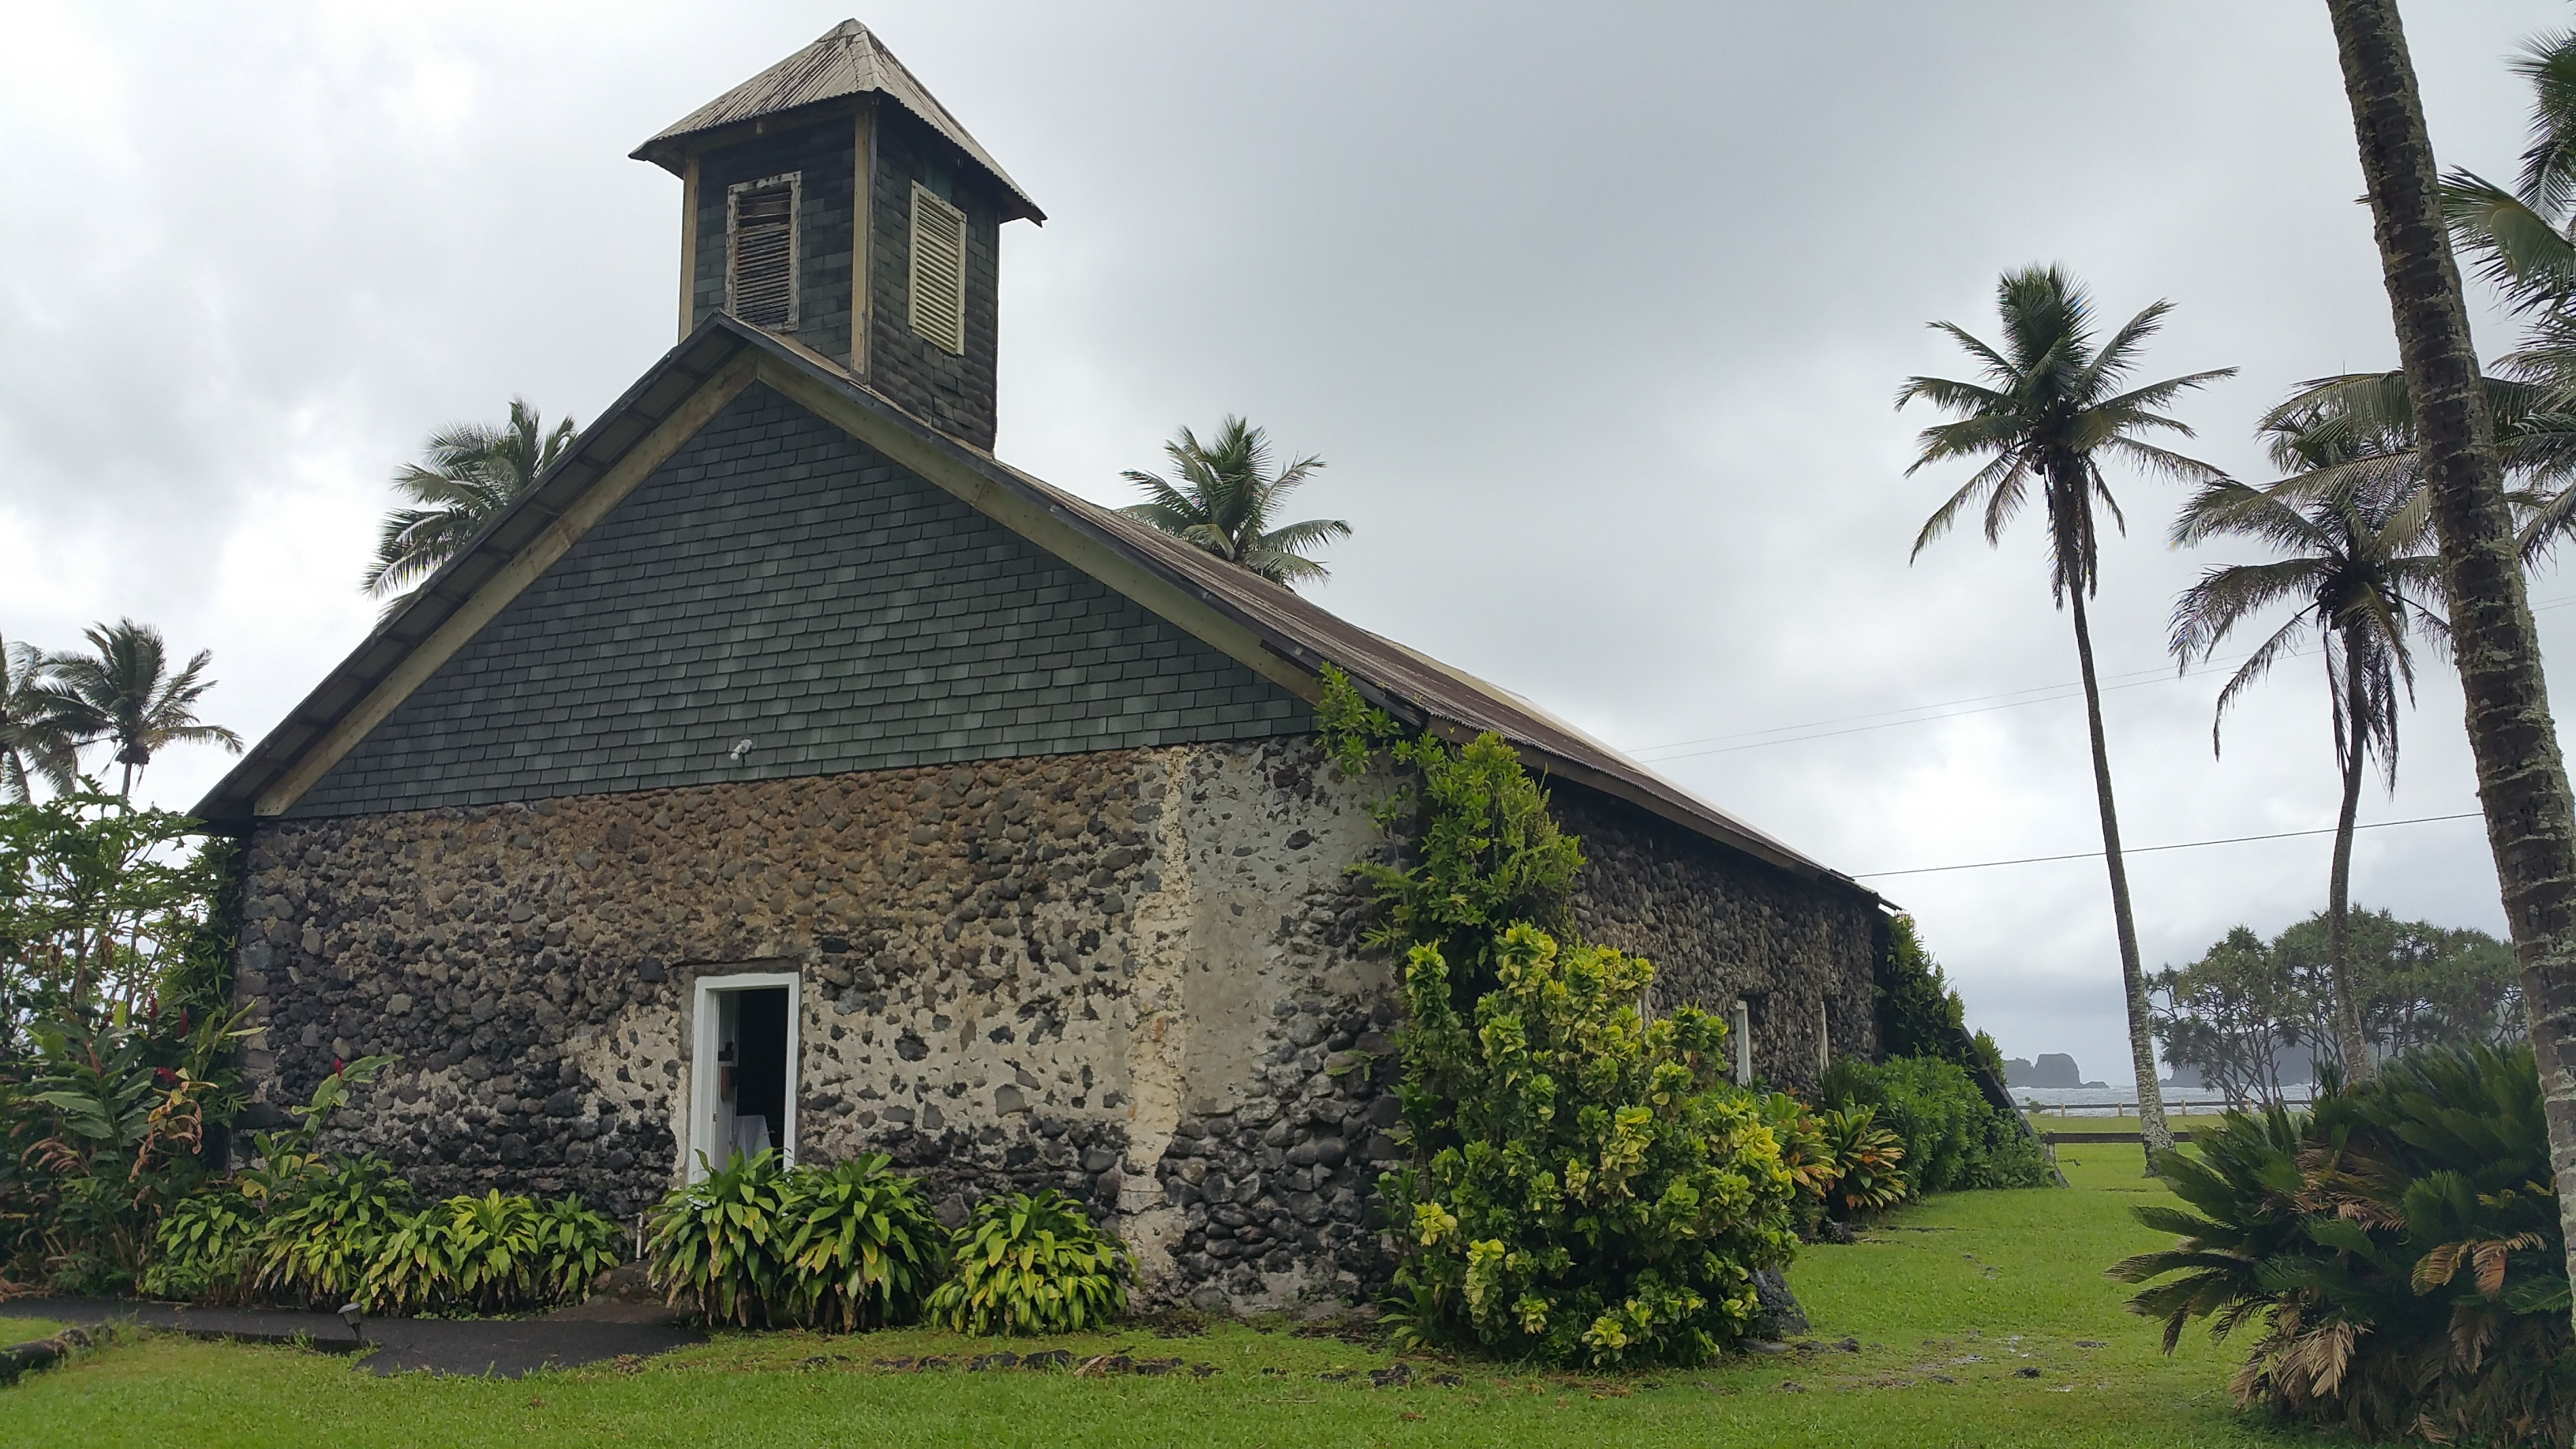 Keanae Congregational Church. Hawaiian name is Lanakila Ihiihi O Iehowa Ona Kava Church. This beautiful church made of lava rock and coral is located on Maui Hawaii.